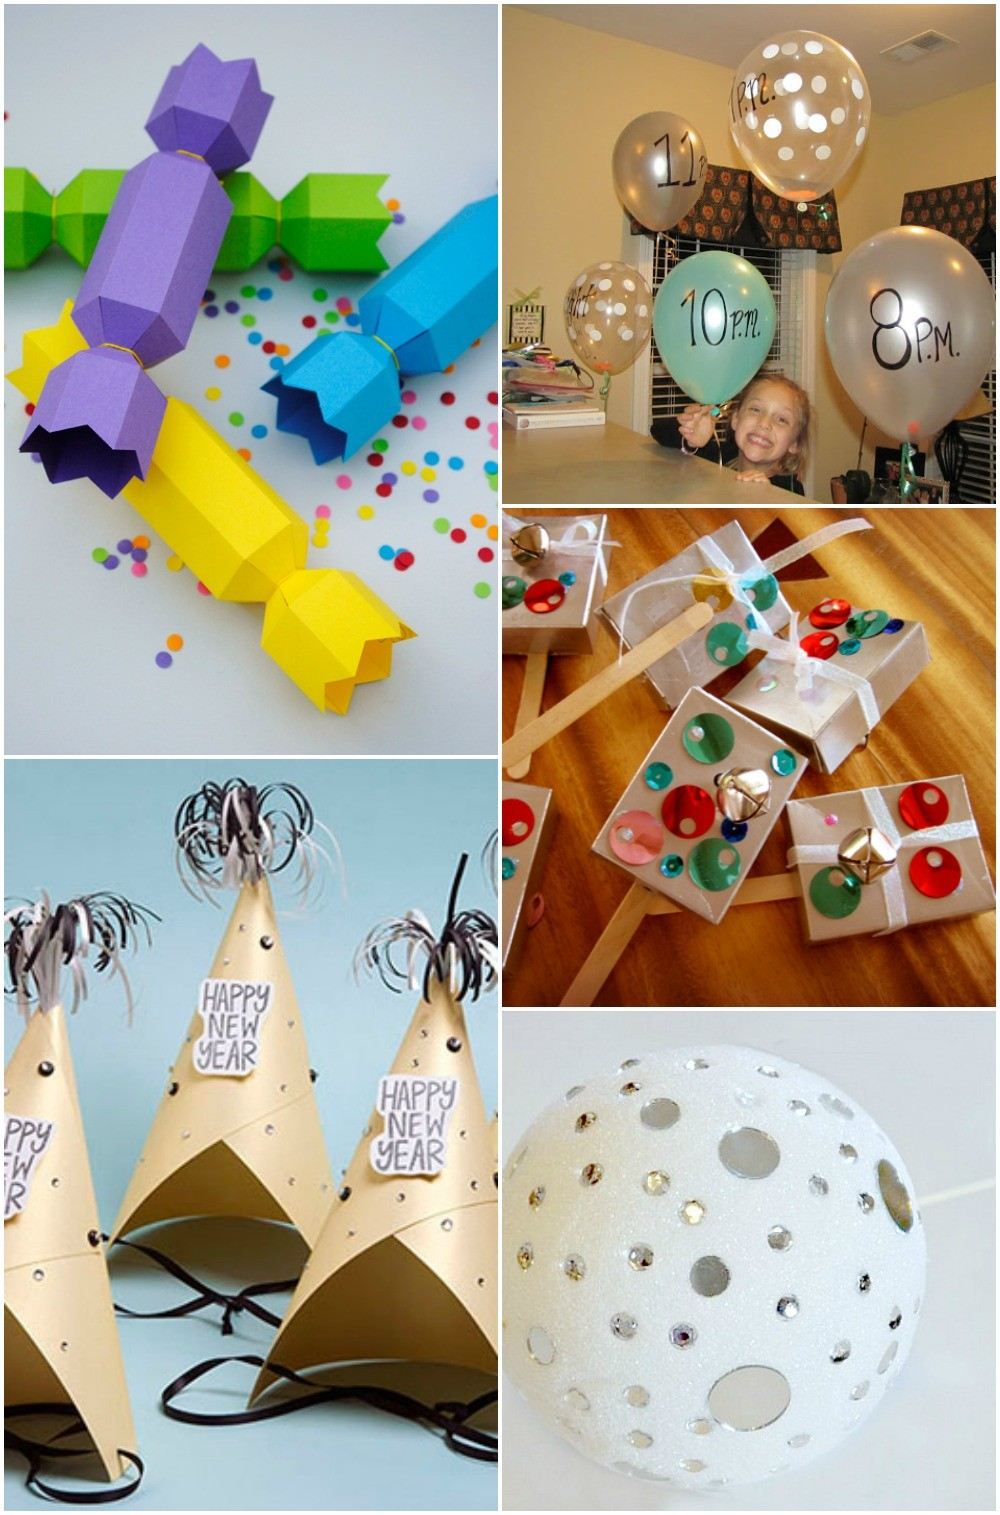 5 Fun New Years Eve Crafts For Kids To Ring In The New Year!